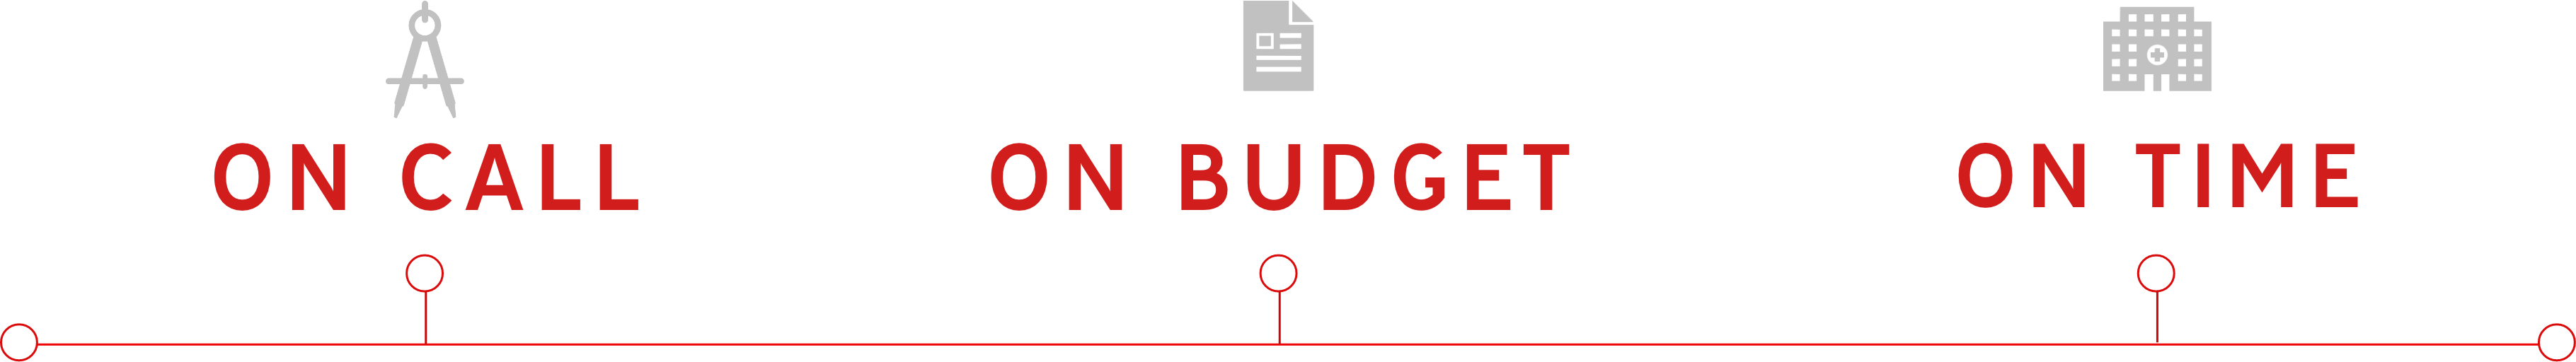 oncall-onbudget